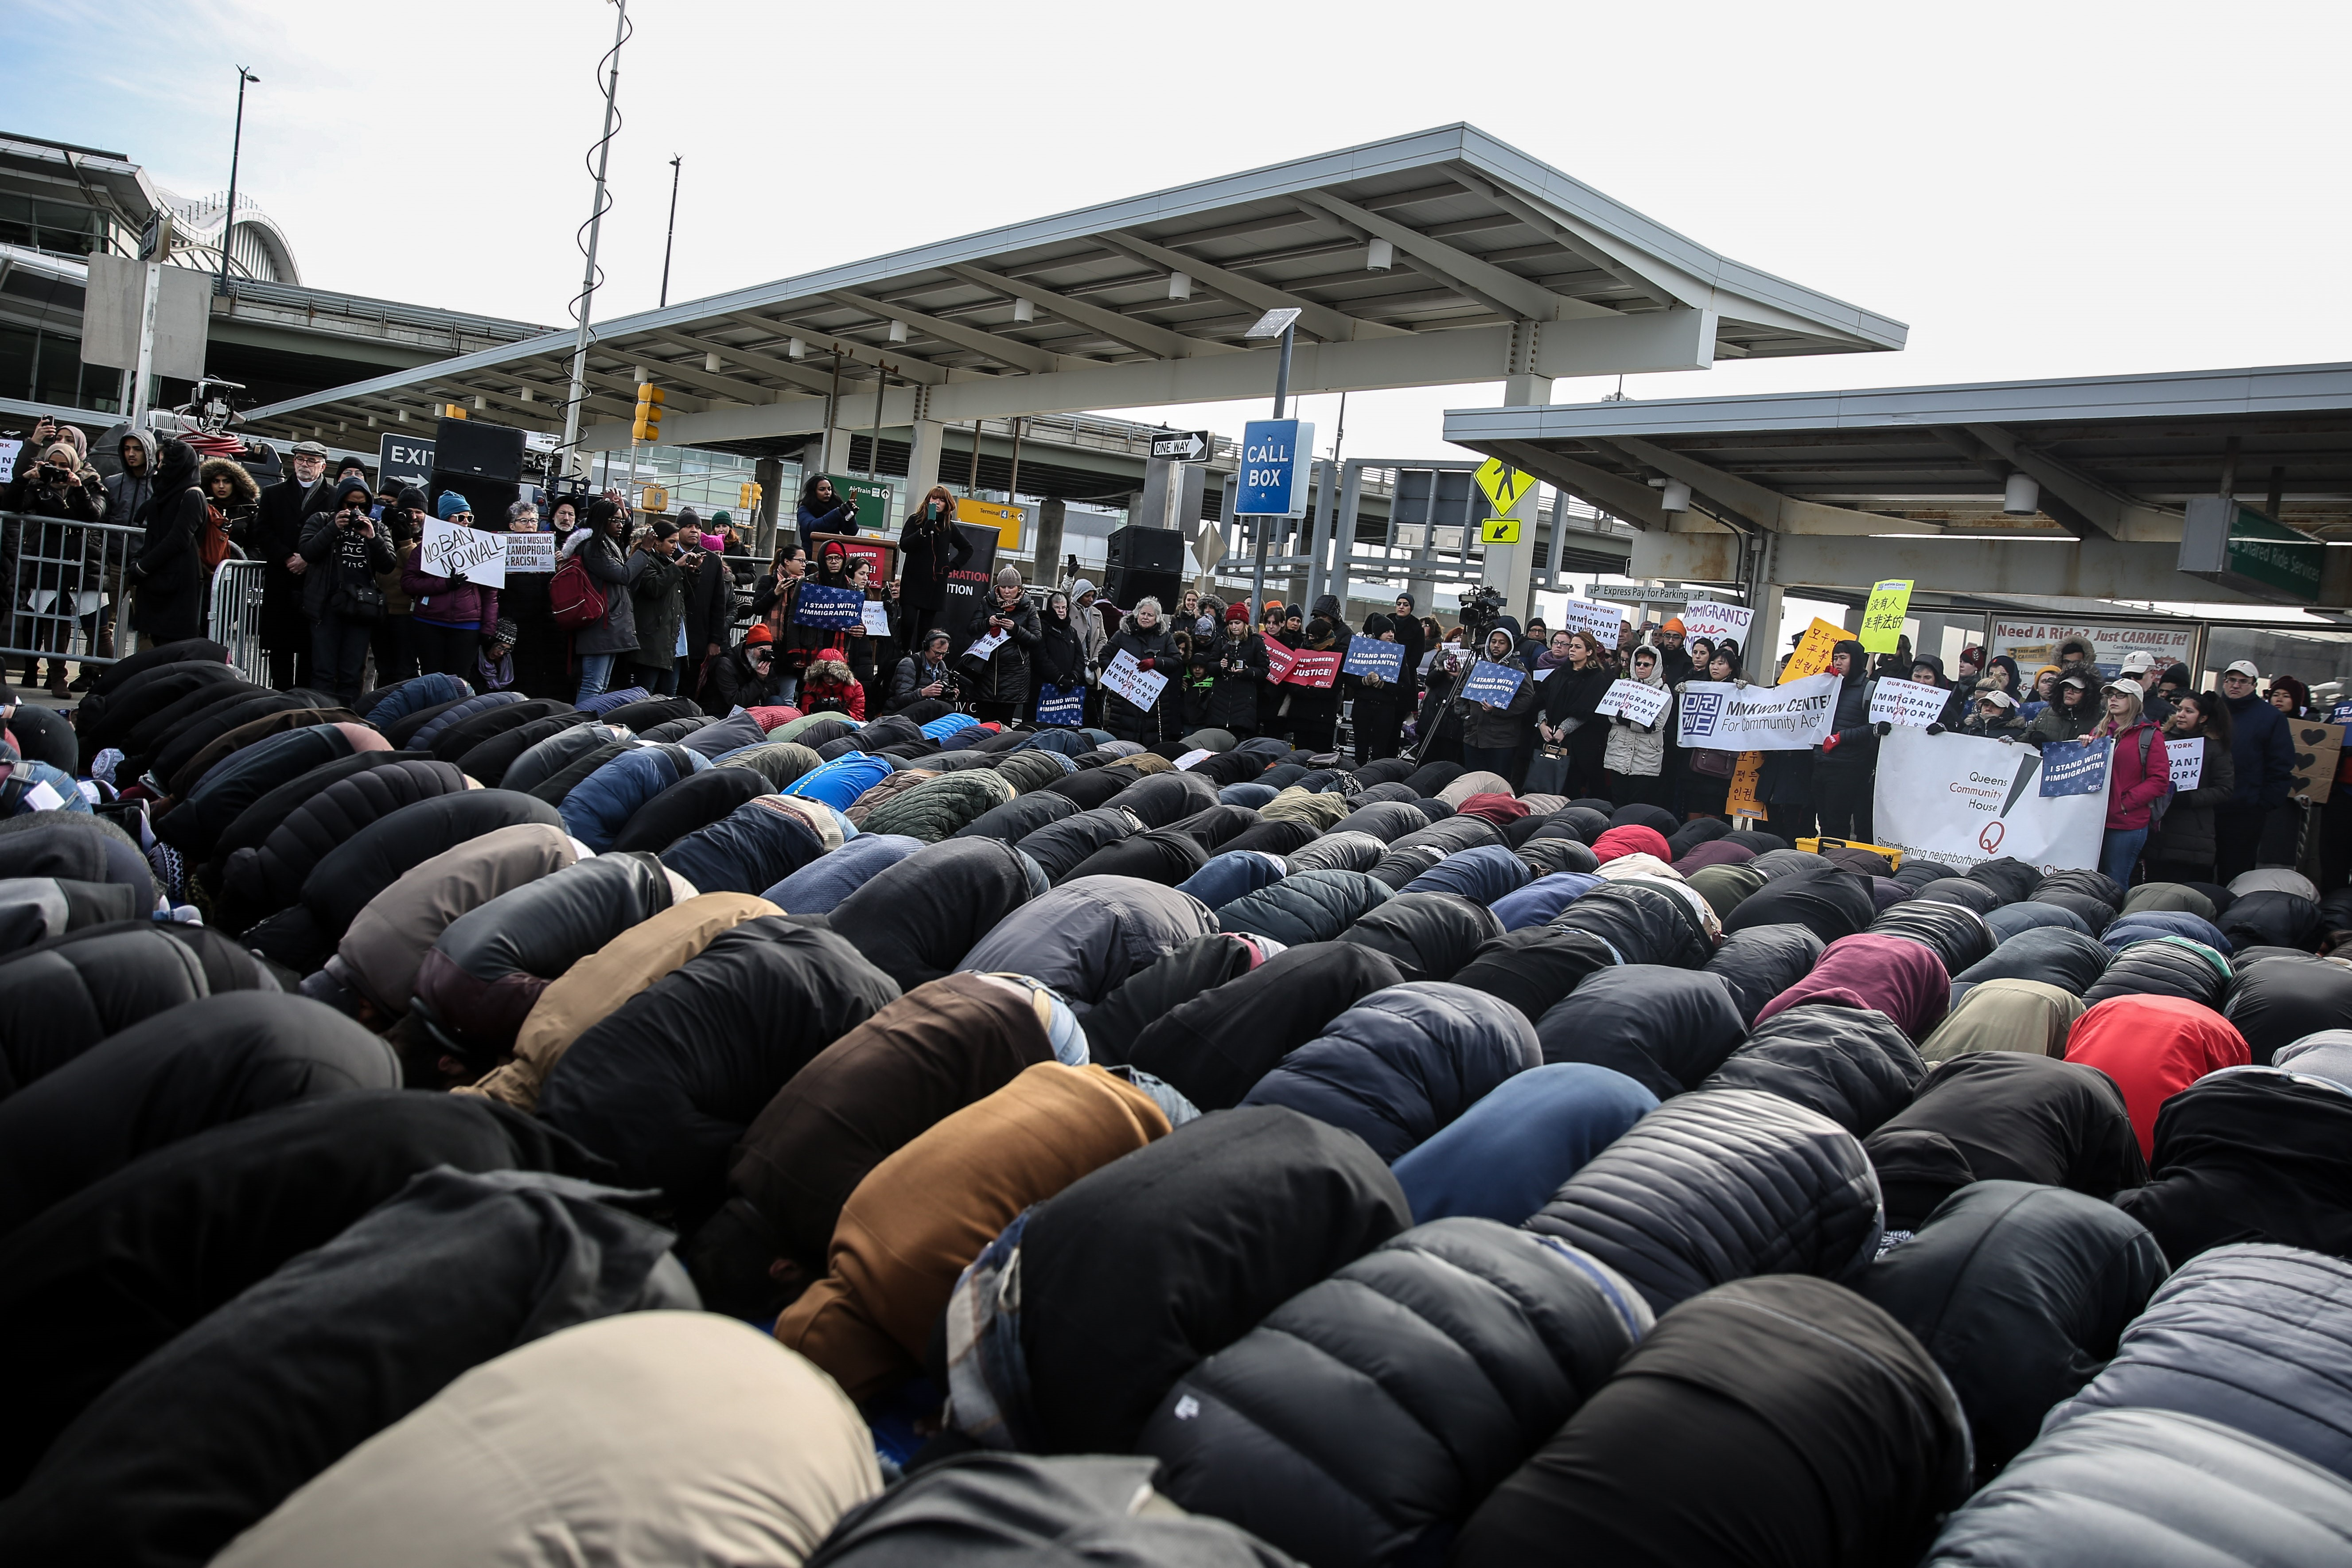 Muslim Americans perform Friday Prayer at JFK Airport as a protest against President Donald J. Trump's executive order banning entry of 7 Muslim-majority countries of admission and visas for 90 days in Queens borough of New York, NY, on Feb. 3, 2017.